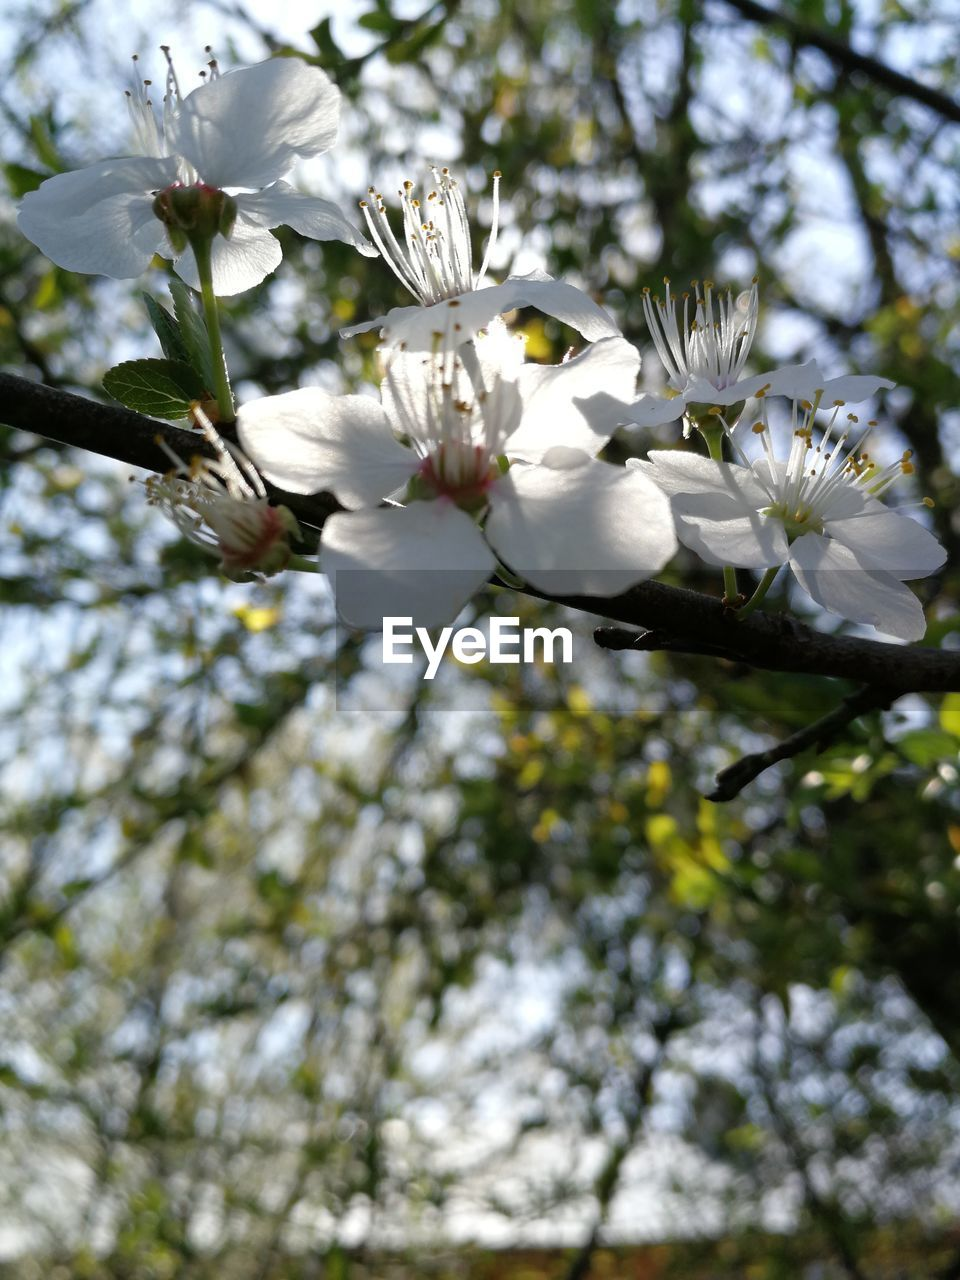 flowering plant, plant, flower, growth, fragility, tree, beauty in nature, vulnerability, freshness, branch, blossom, springtime, low angle view, petal, day, nature, white color, no people, pollen, twig, flower head, outdoors, cherry blossom, cherry tree, spring